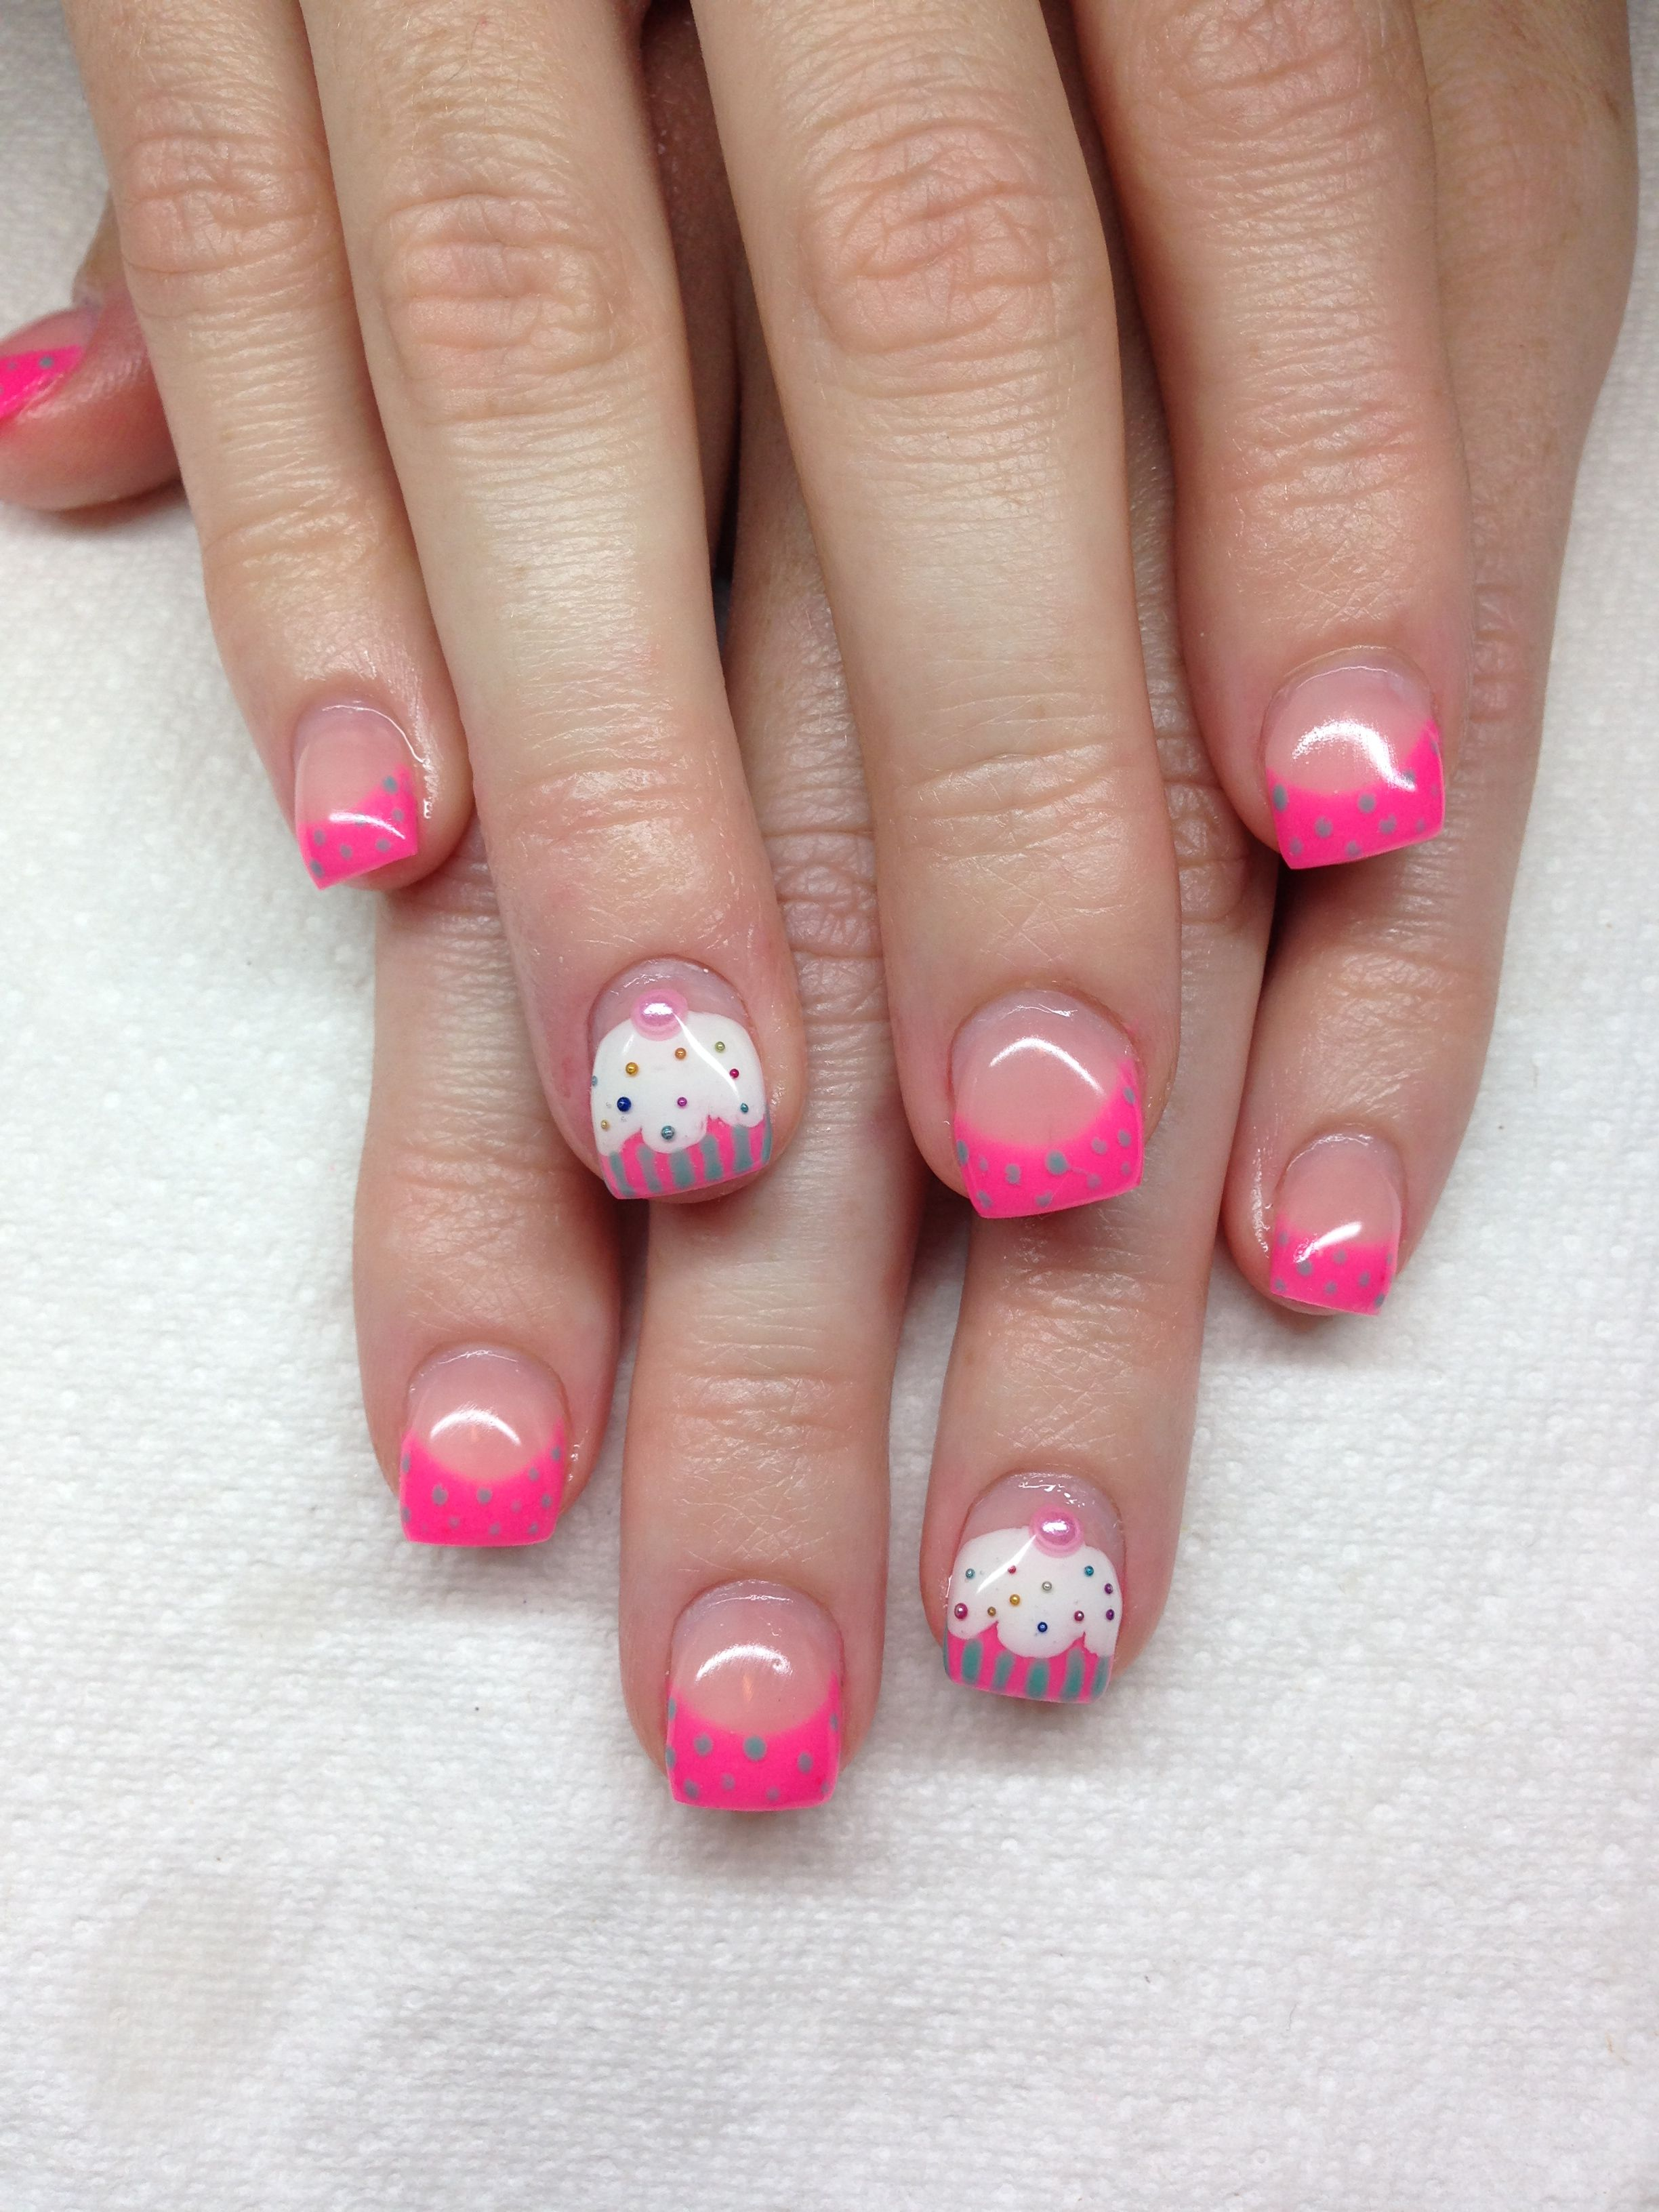 Hot Pink Tips And An Adorable Cupcake Accent Gel Nails With Hand Drawn Design Using Gel By